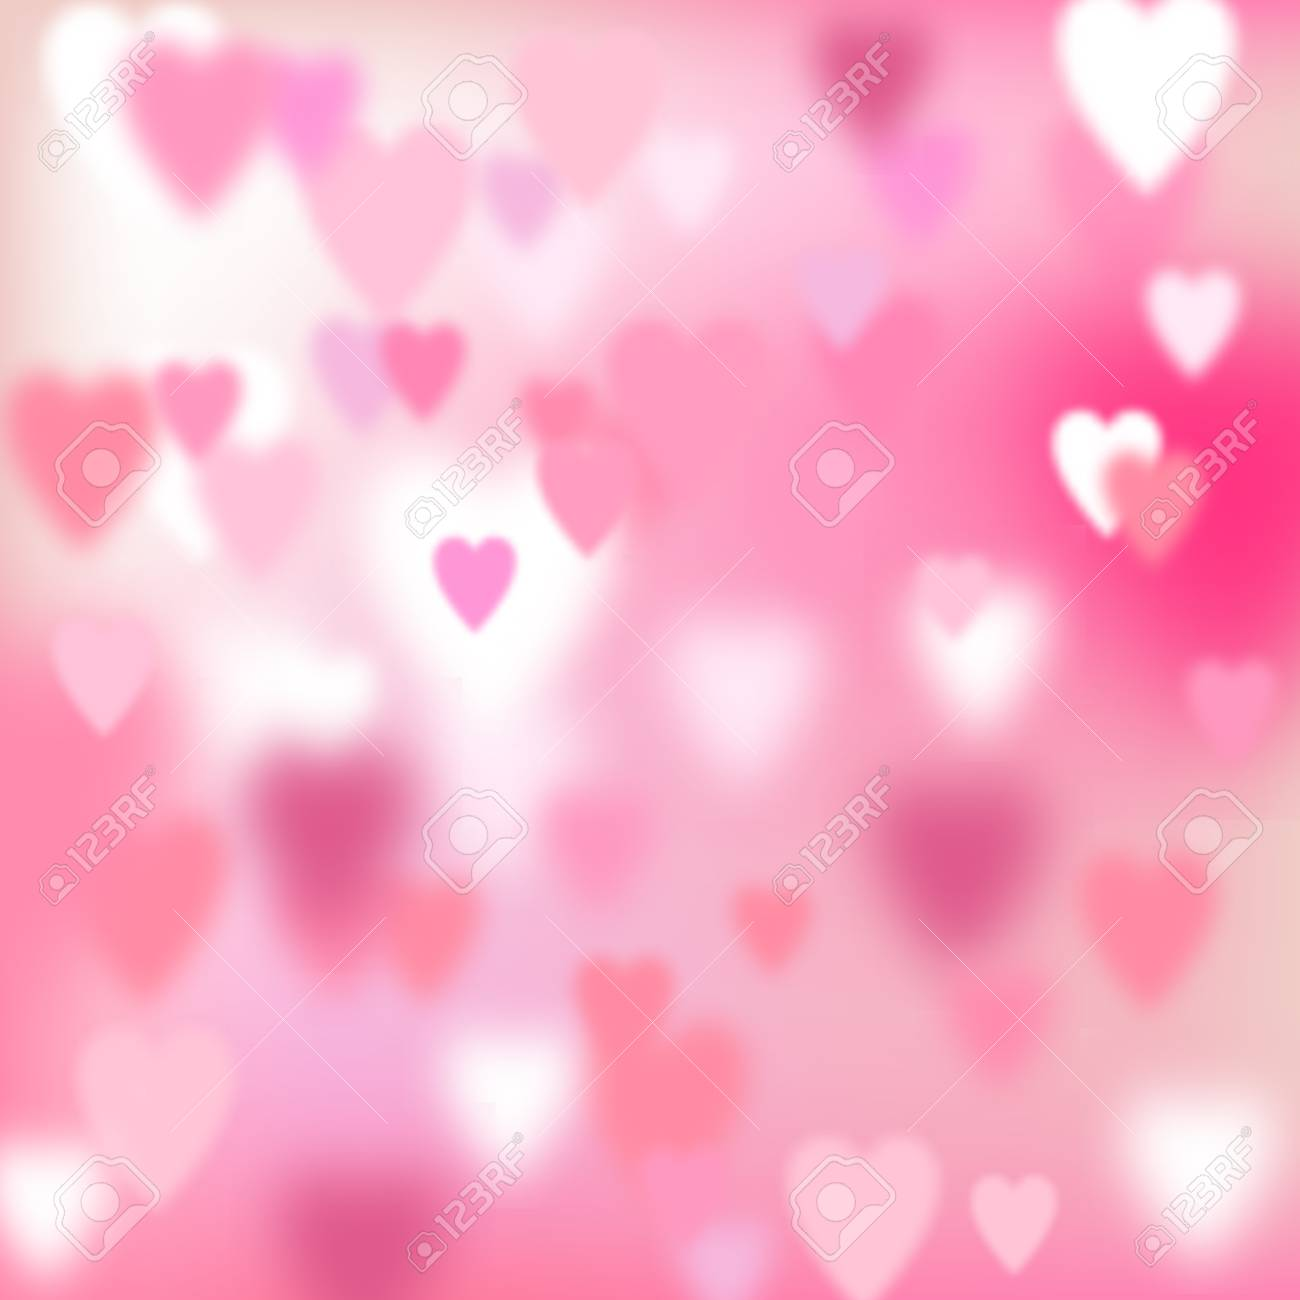 Valentines Day Vector Blurred Love Background With Pink Hearts